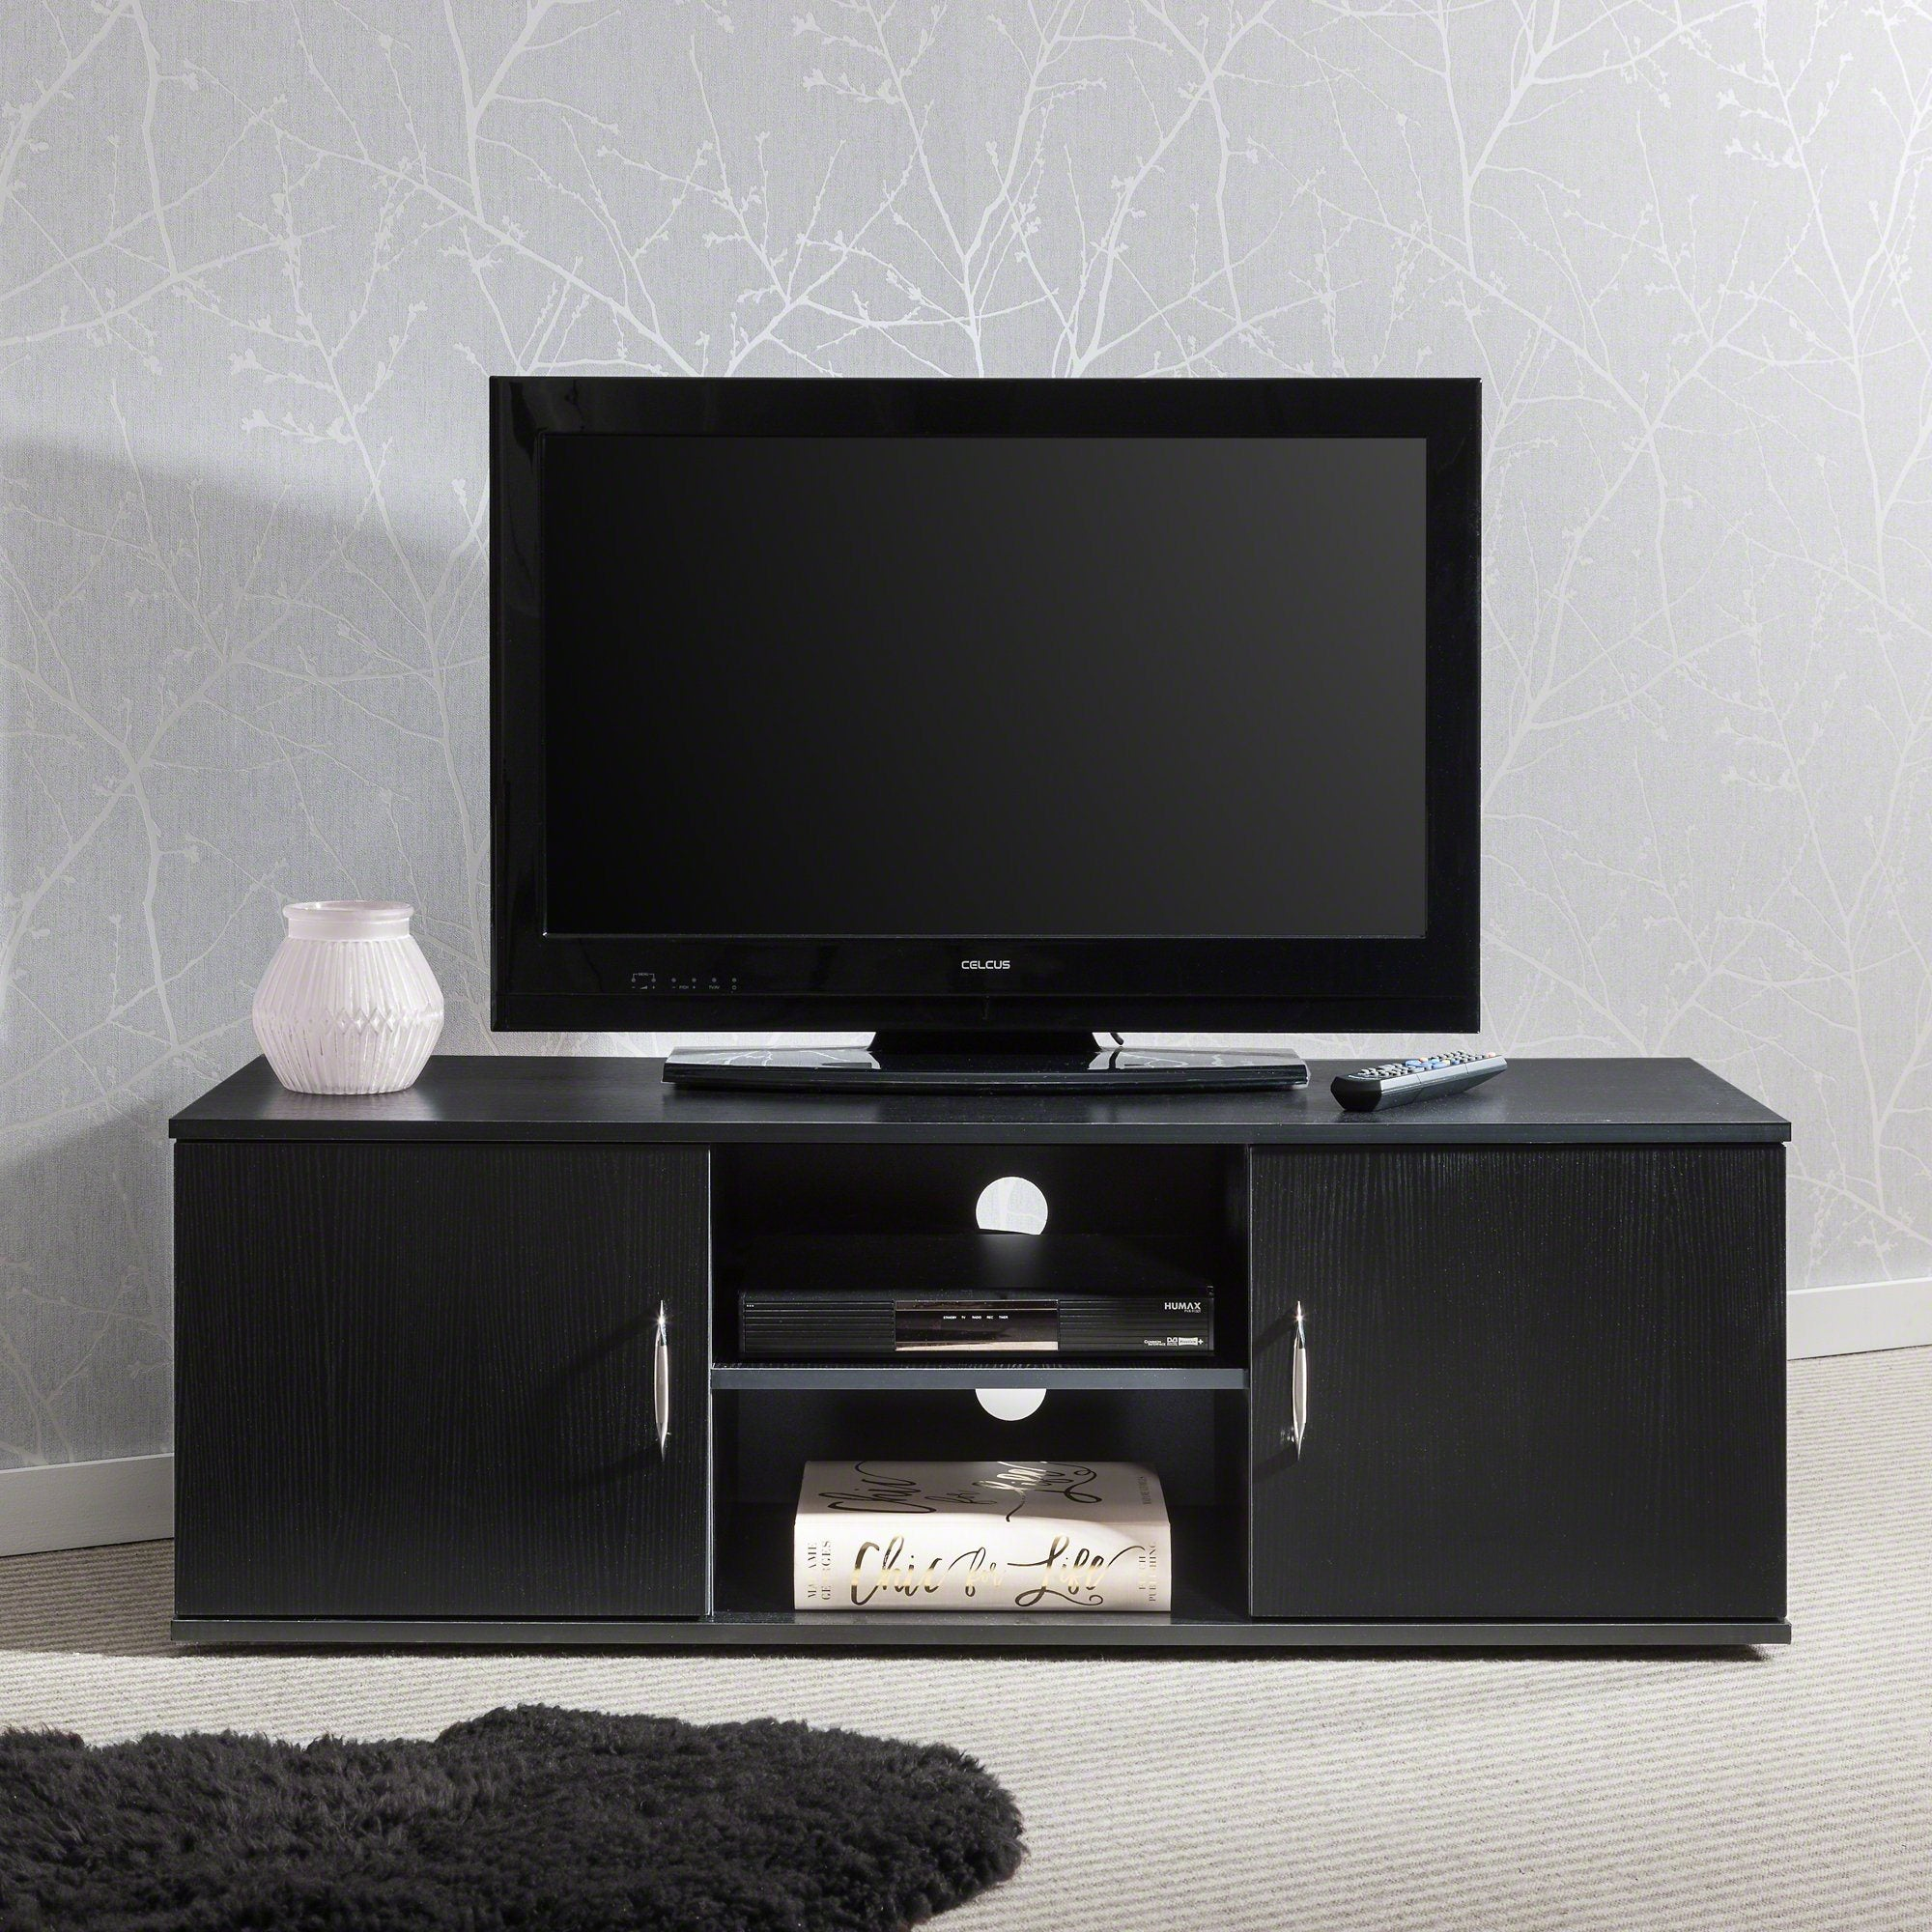 tv stand cabinet unit double door with storage and shelf, laura james